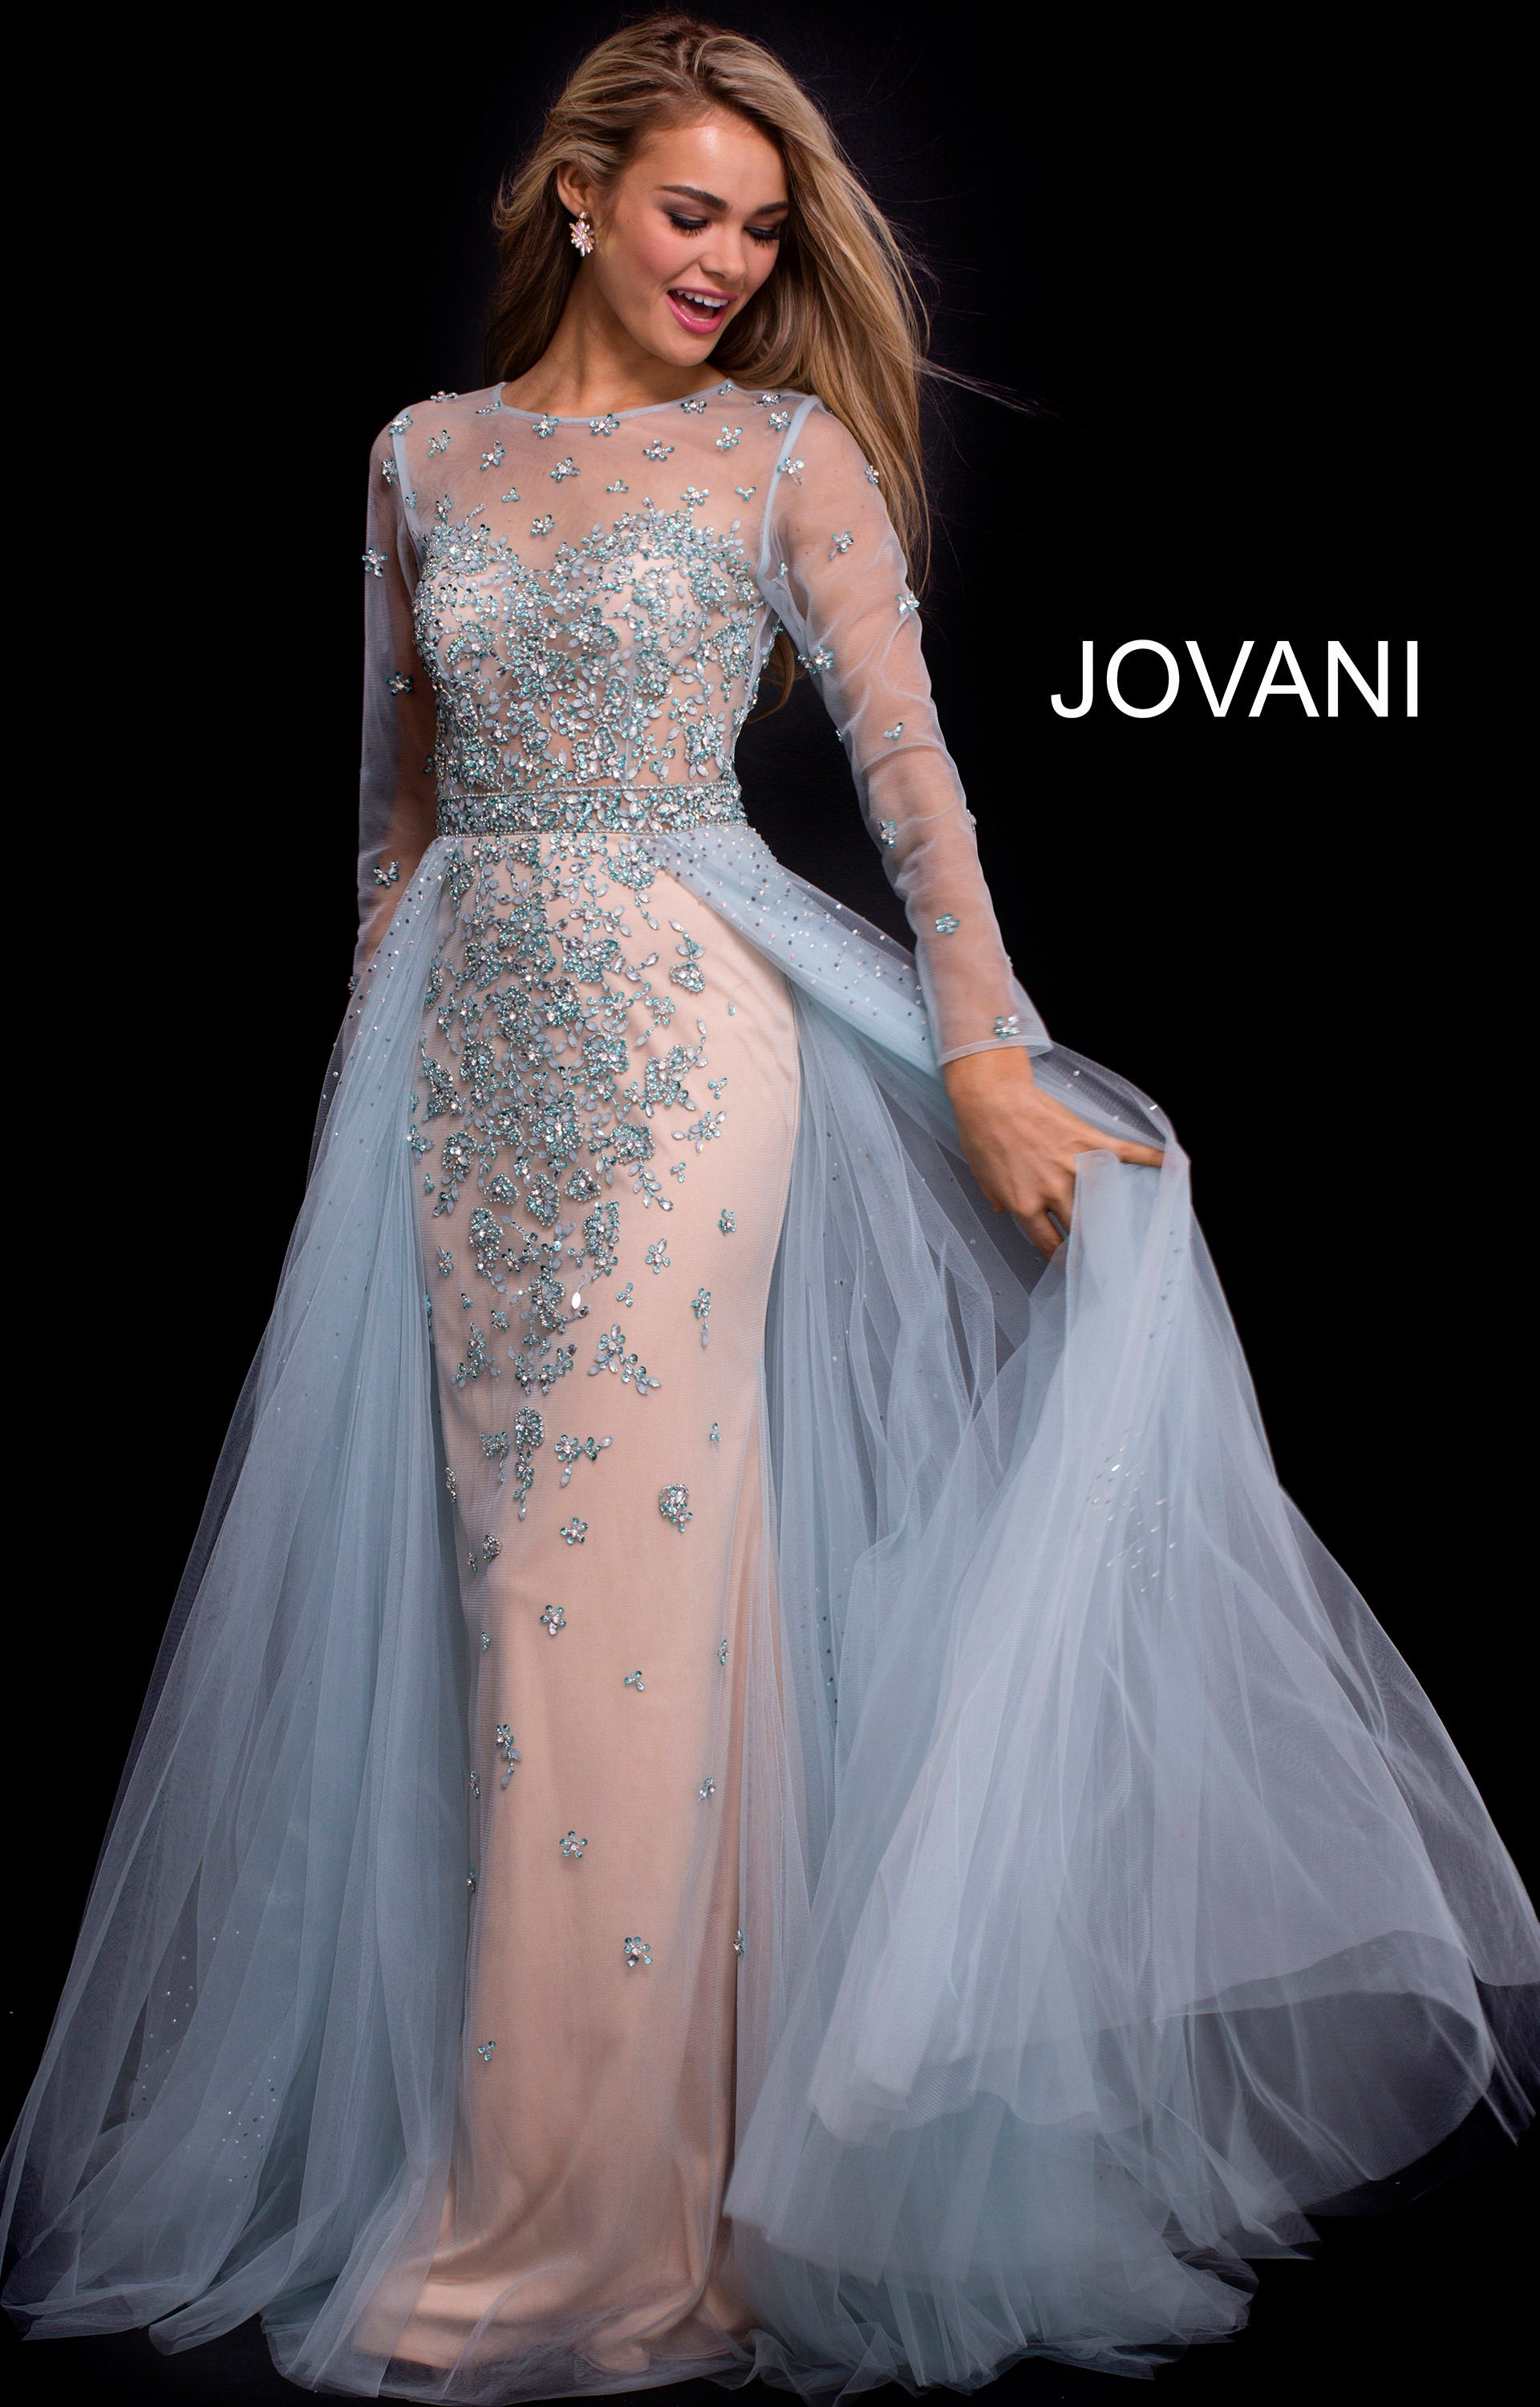 Jovani White Long Sleeve Dress